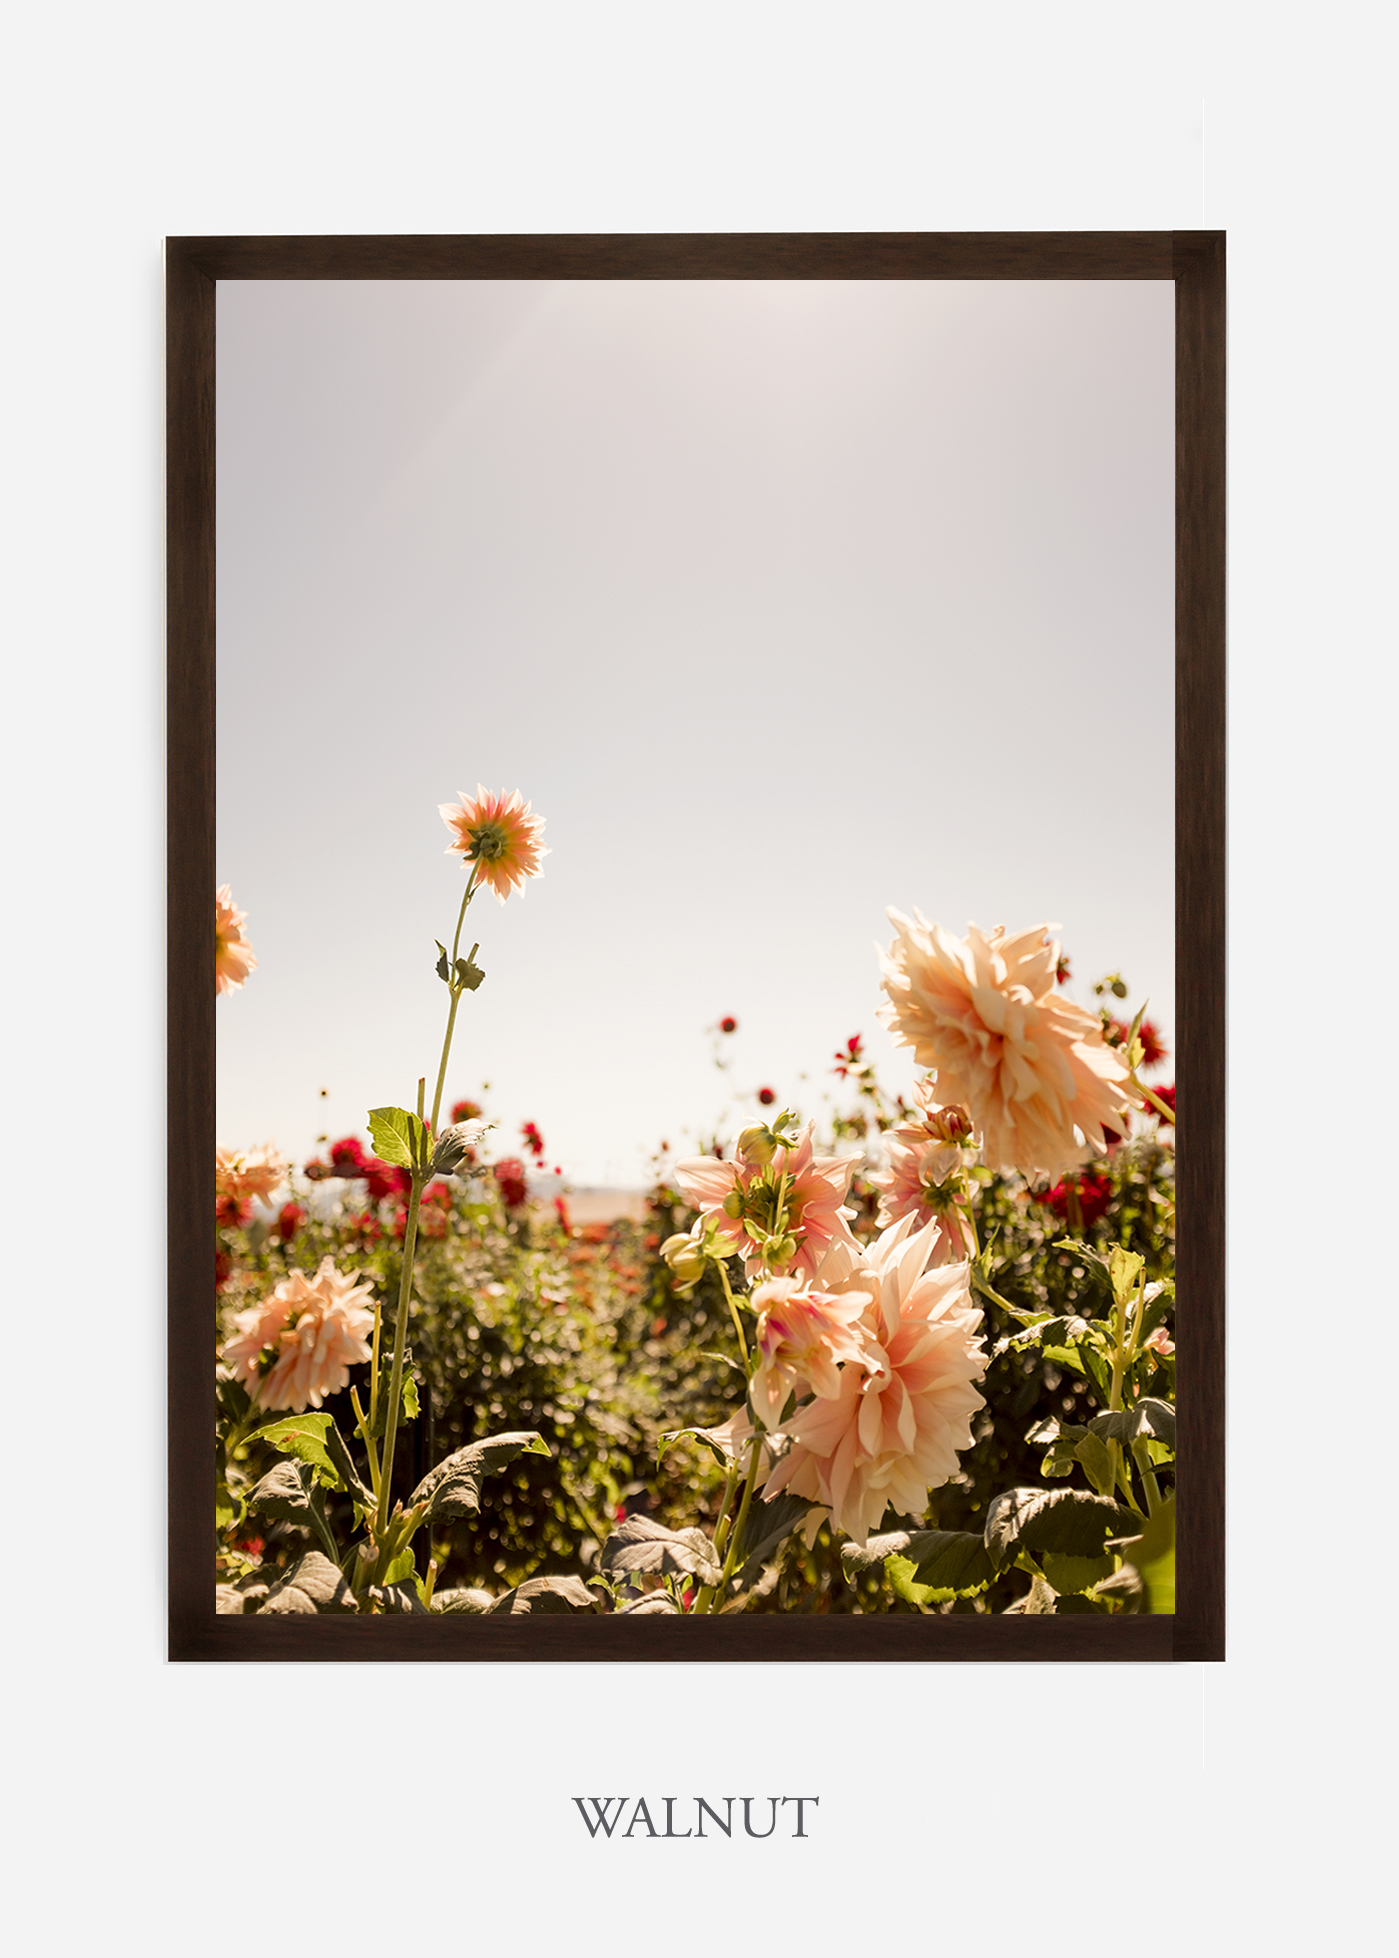 DahliaNo.6-walnut-frame-interior-design-botanical-print-art-wilder-california-wilder-paper.jpg